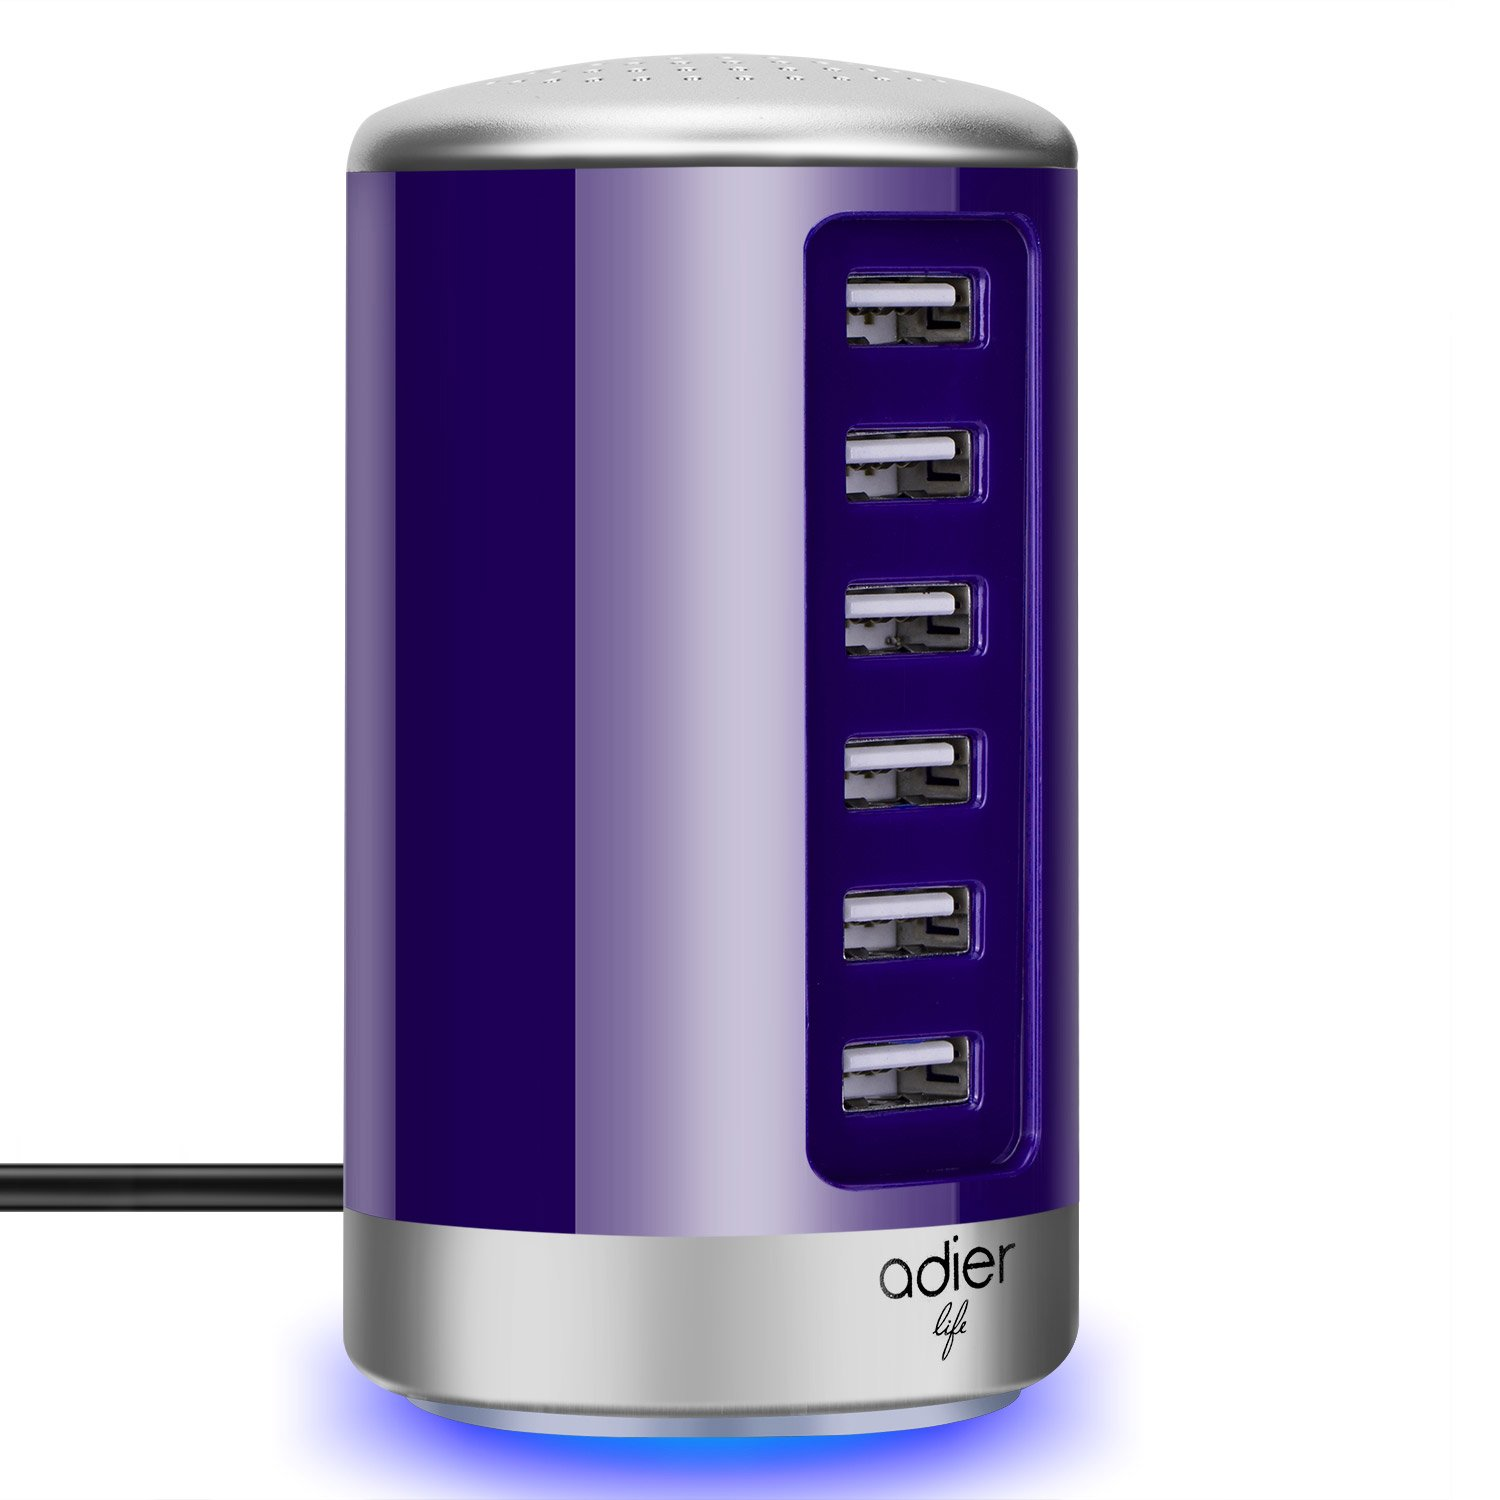 adierlife 6-Port USB Desktop Charger USB Charging Station for Apple iPhone iPad Samsung Galaxy and Other USB Enabled Devices (Purple)